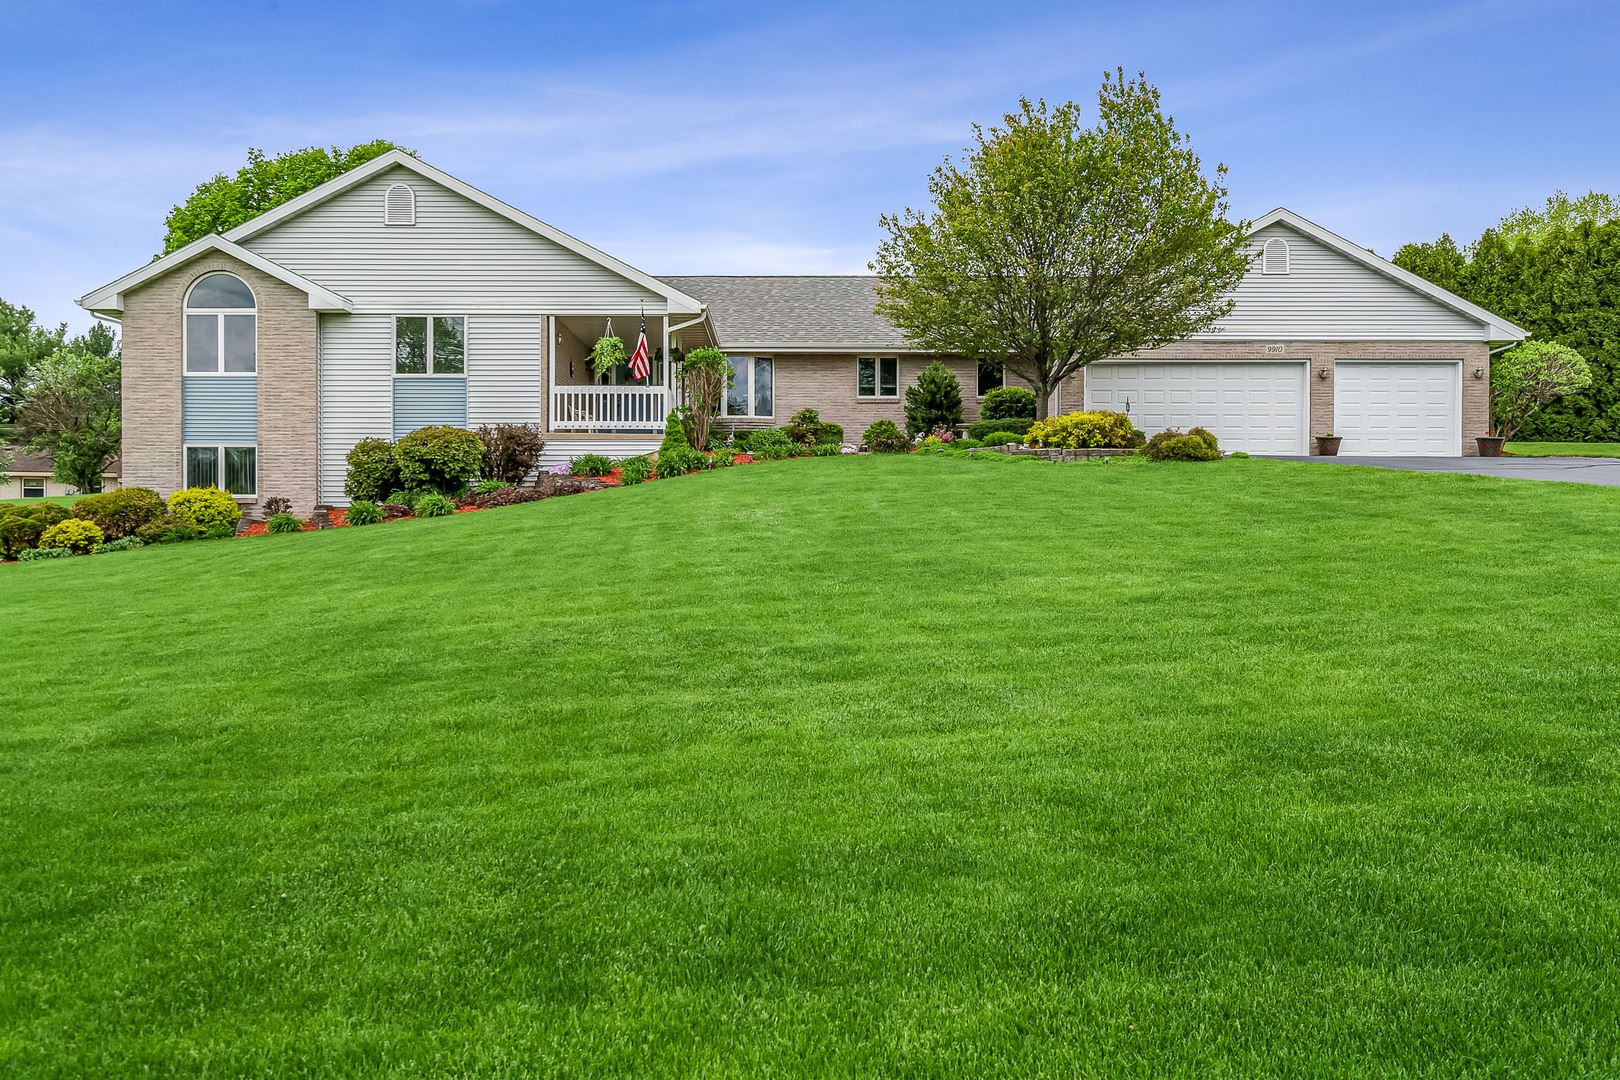 9910 Badger Trail, Belvidere, IL 61008 - #: 10724767